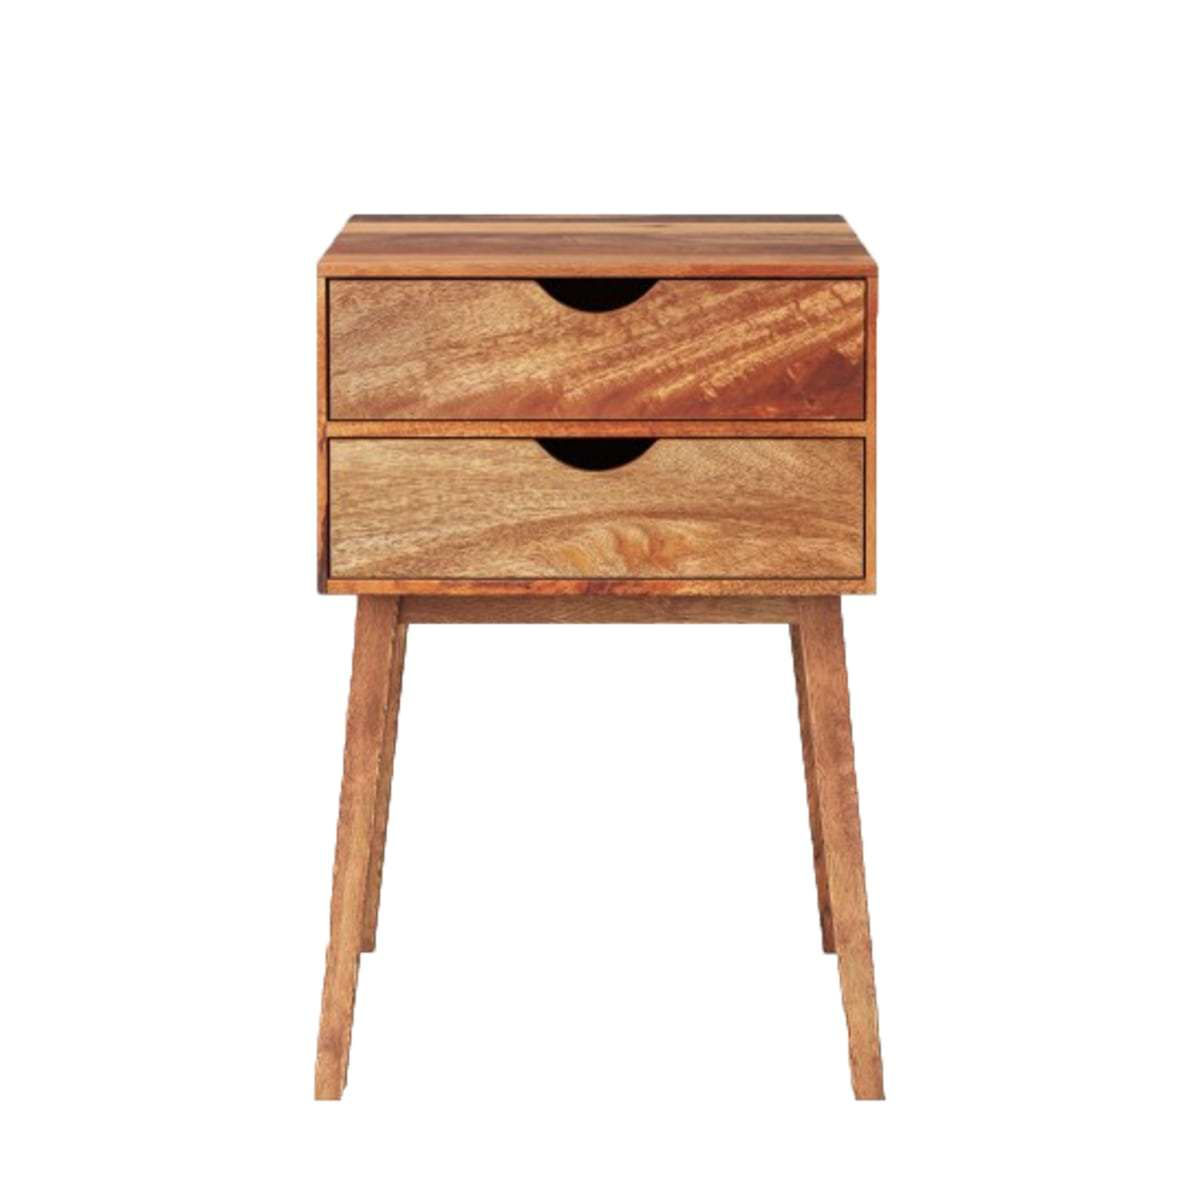 square wood end table the outrageous awesome mid century eight nightstands under that make you coo jessica brigham nighstands thatll two drawer accent magazine ready for life